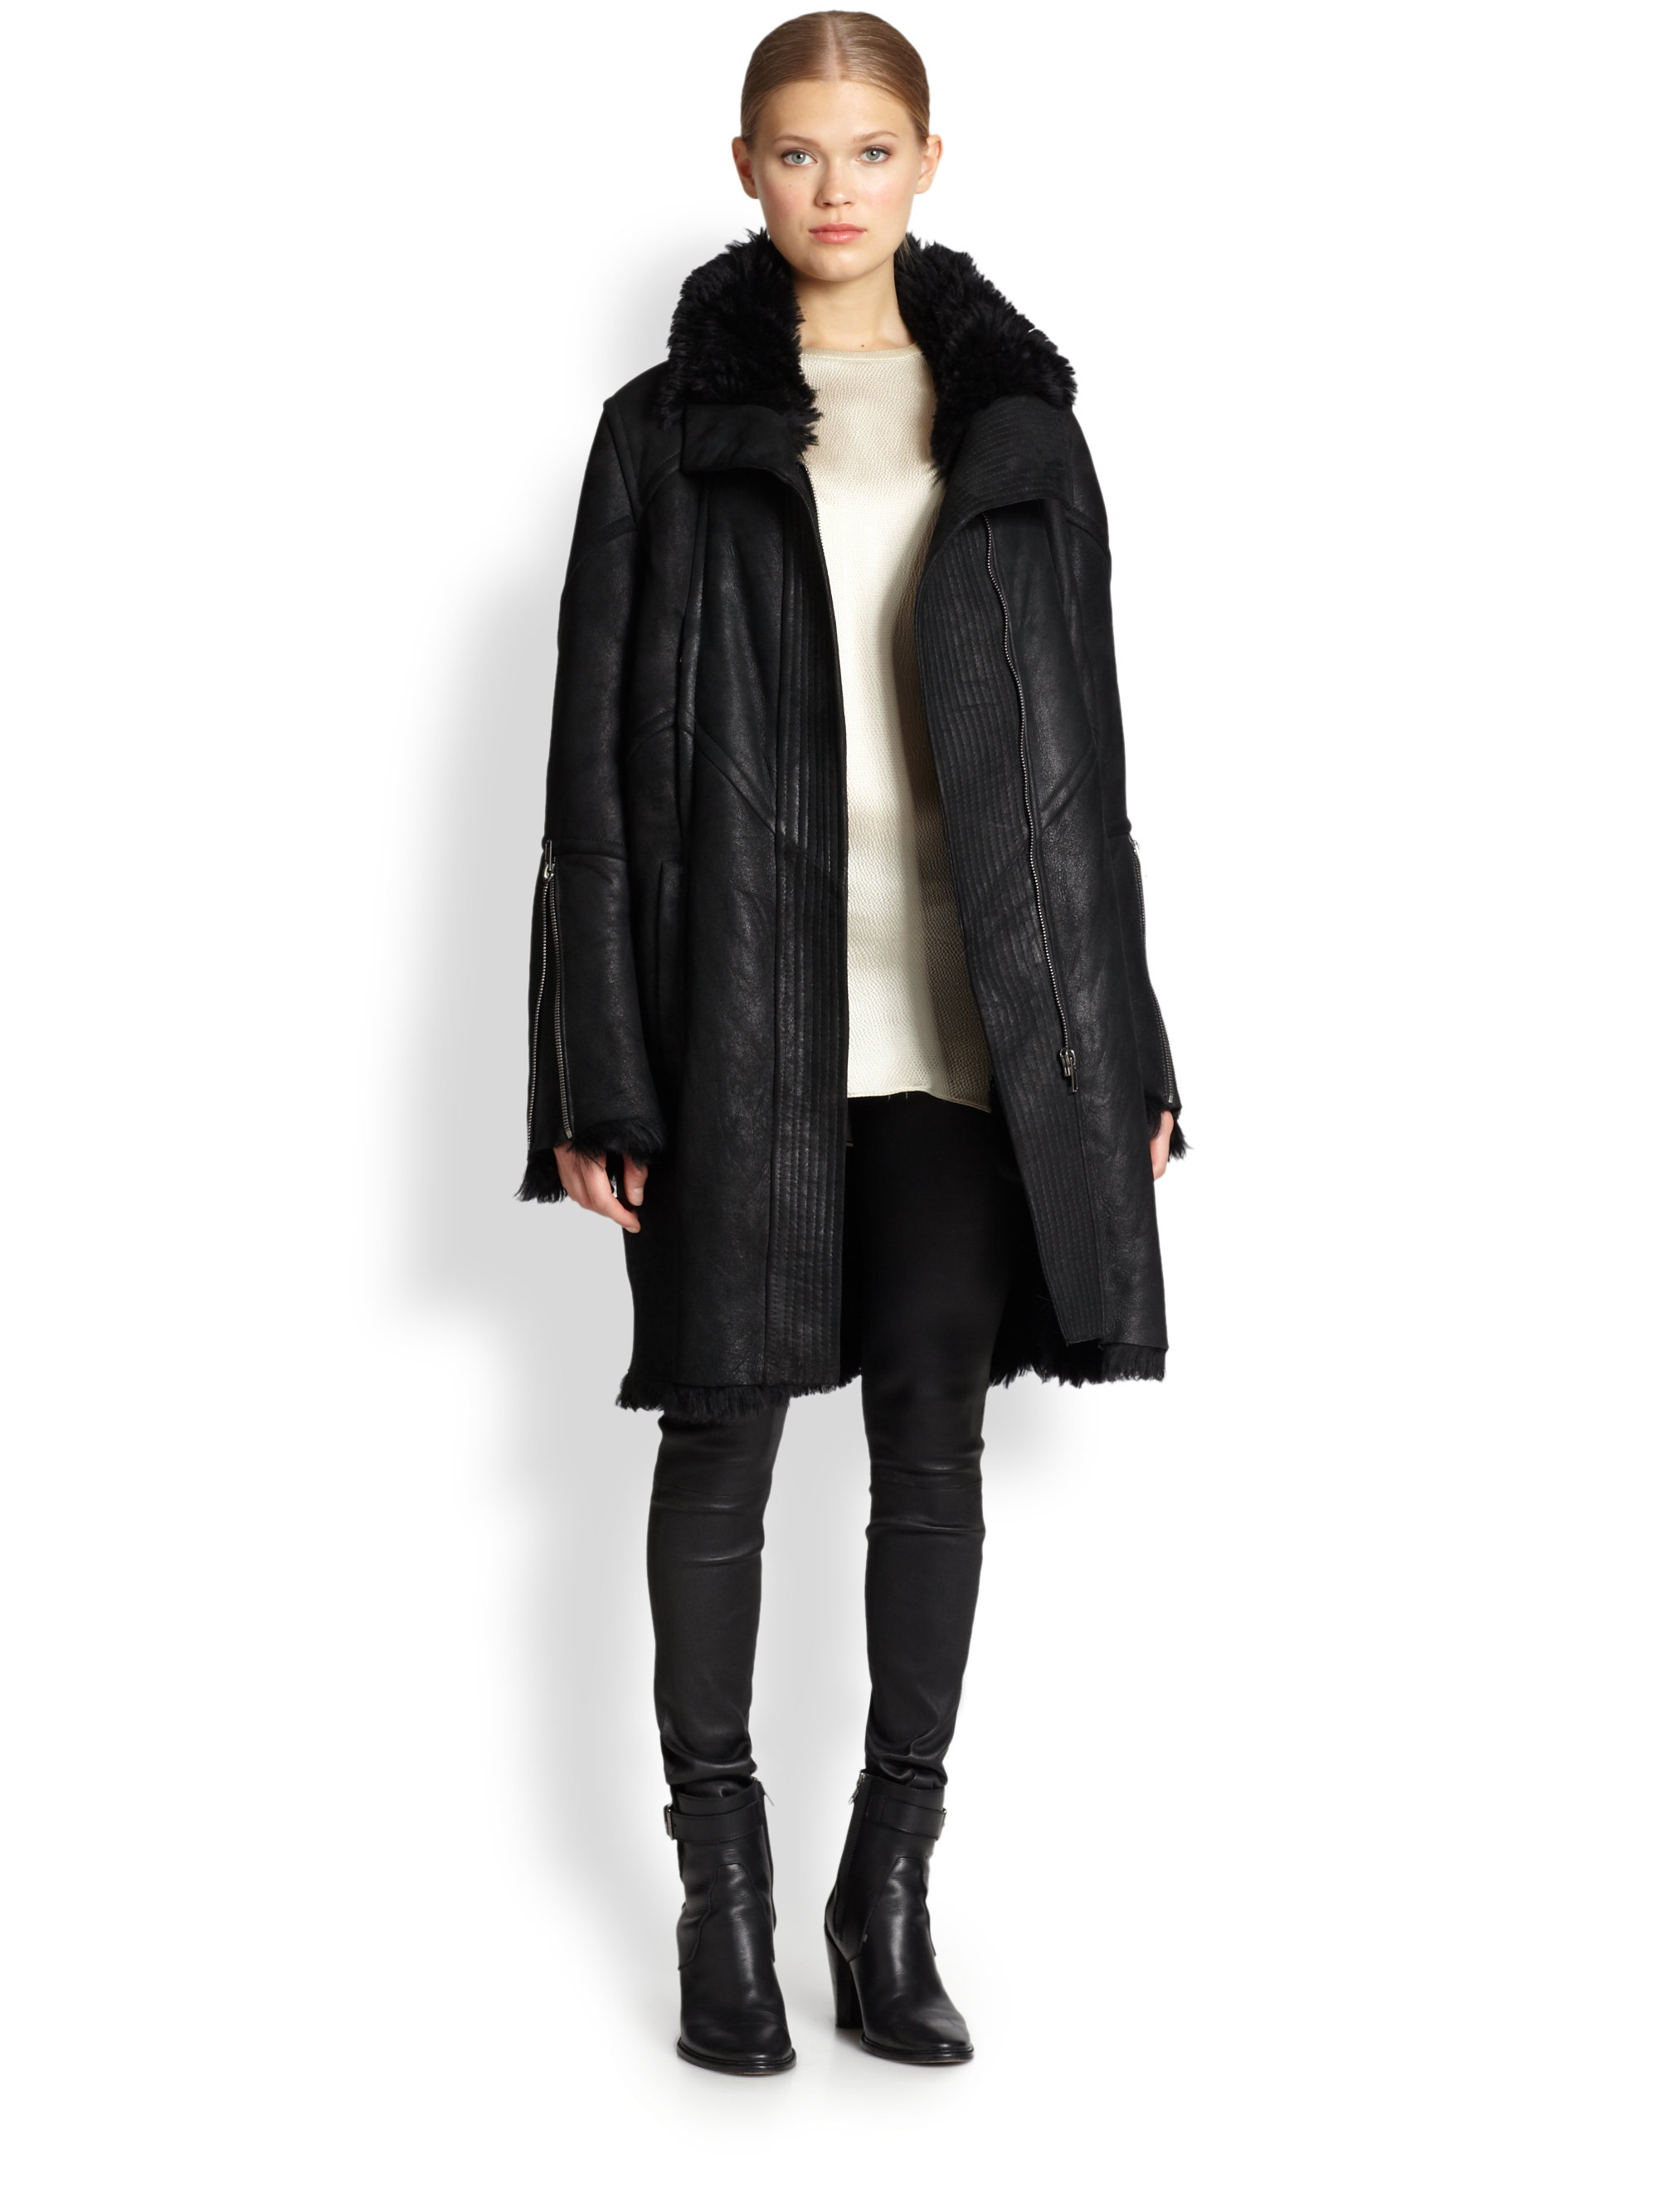 Helmut lang Tuft Shearling Coat in Black | Lyst